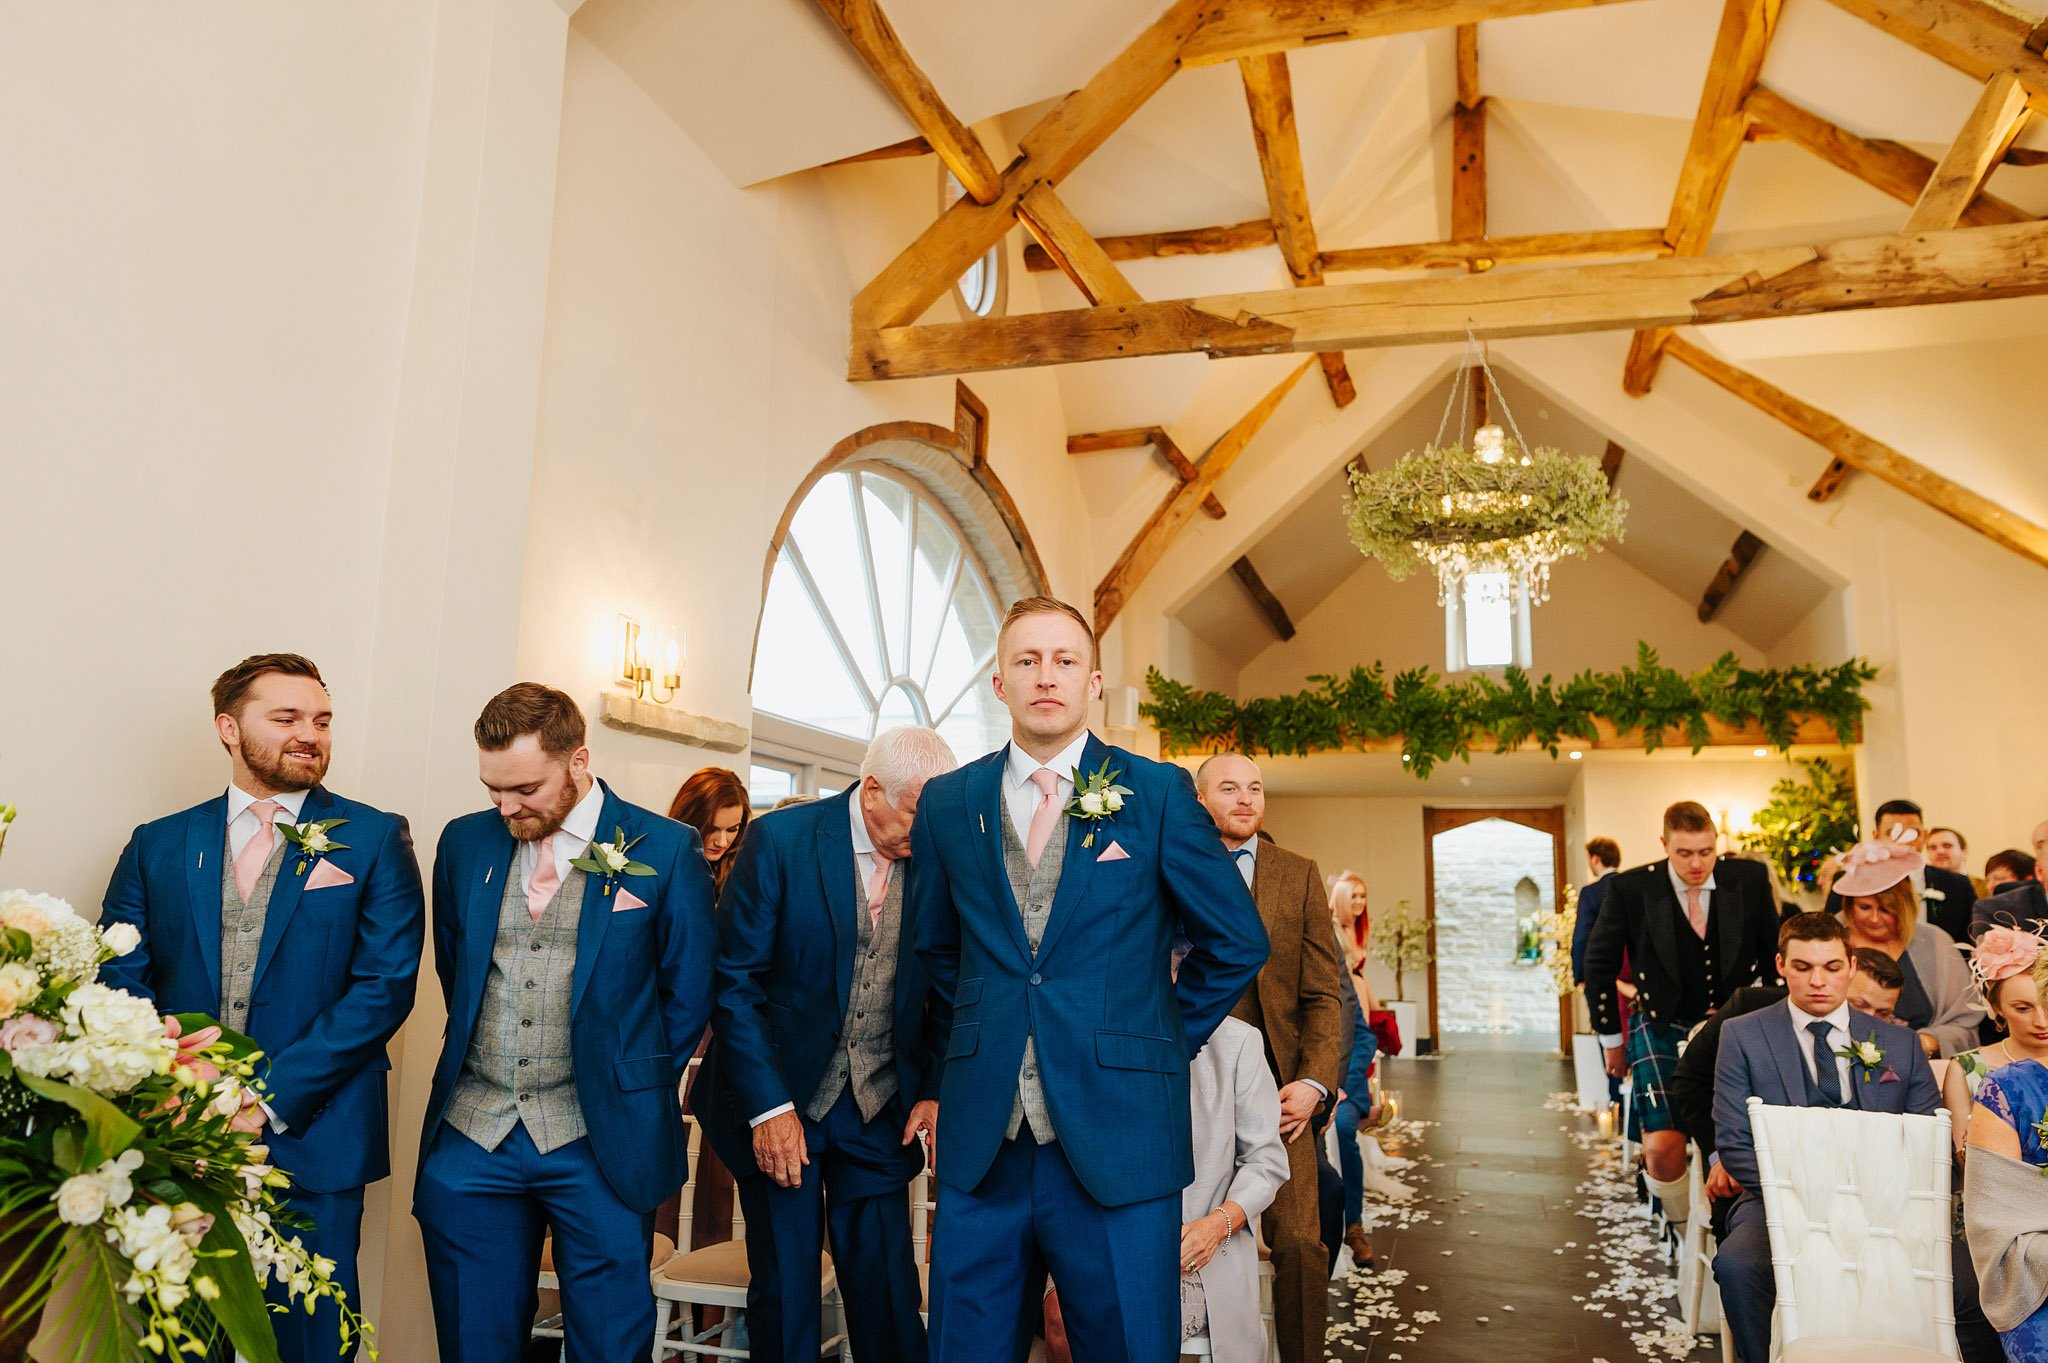 Lemore Manor wedding, Herefordshire - West Midlands | Sadie + Ken 29